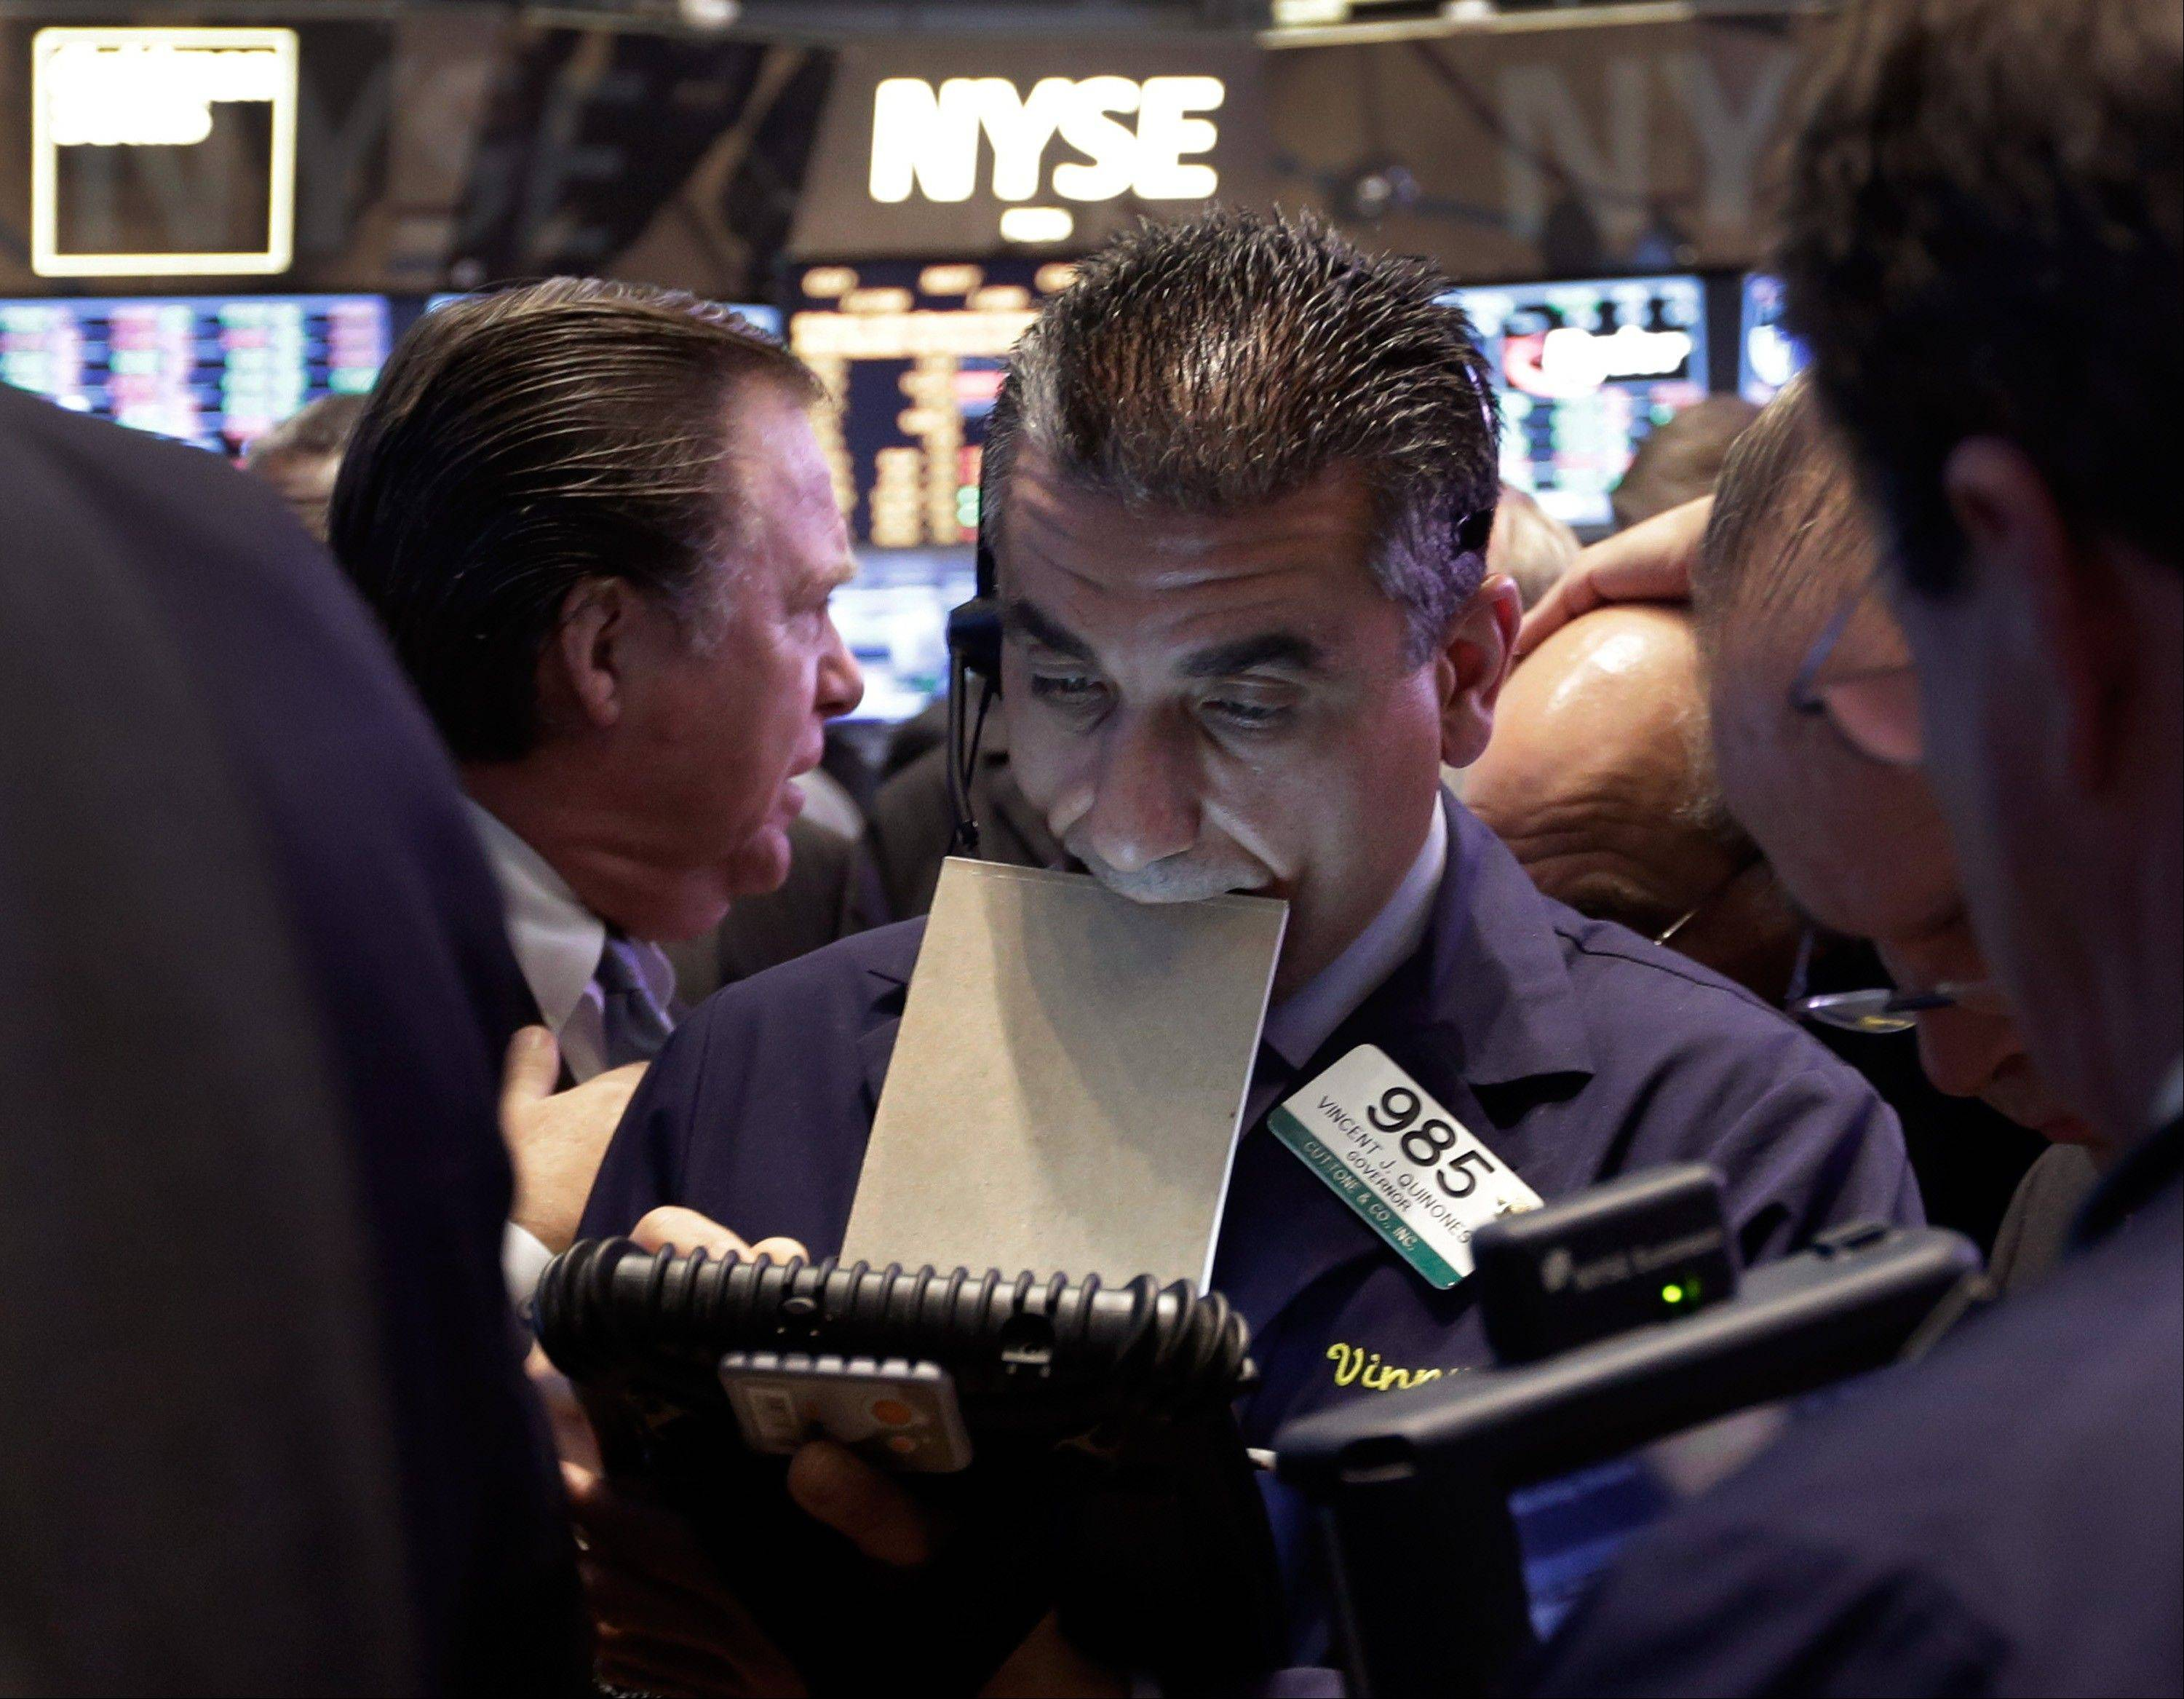 Stock markets were volatile on Friday June 7, 2013 as investors awaited a key U.S. jobs report for clues on how much longer the Federal Reserve will keep providing stimulus to the world's largest economy.